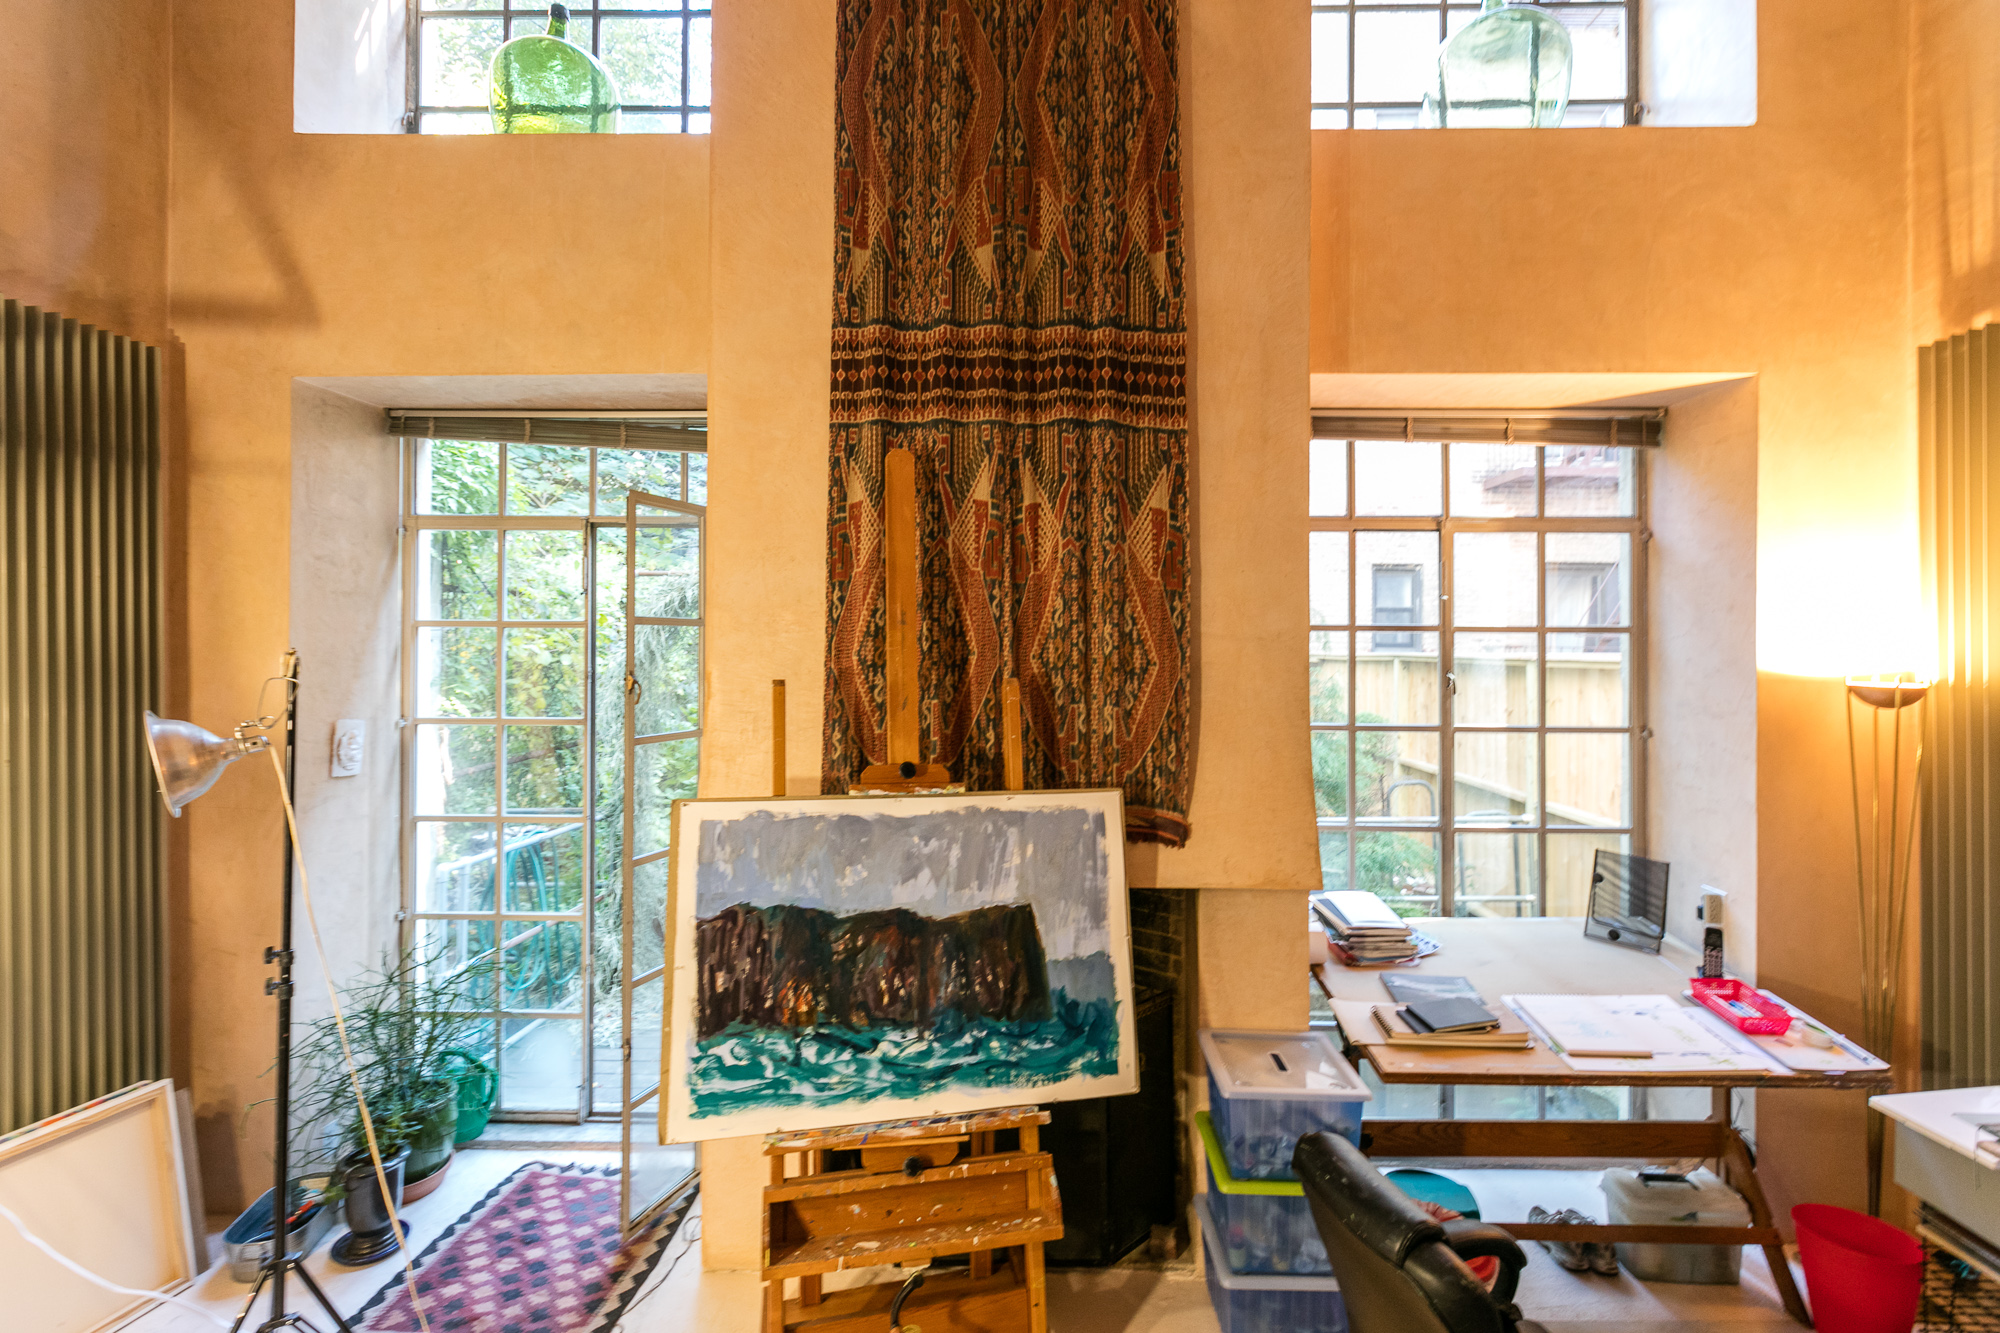 how an artist transformed a historic brooklyn house into a quirky how an artist transformed a historic brooklyn house into a quirky sanctuary